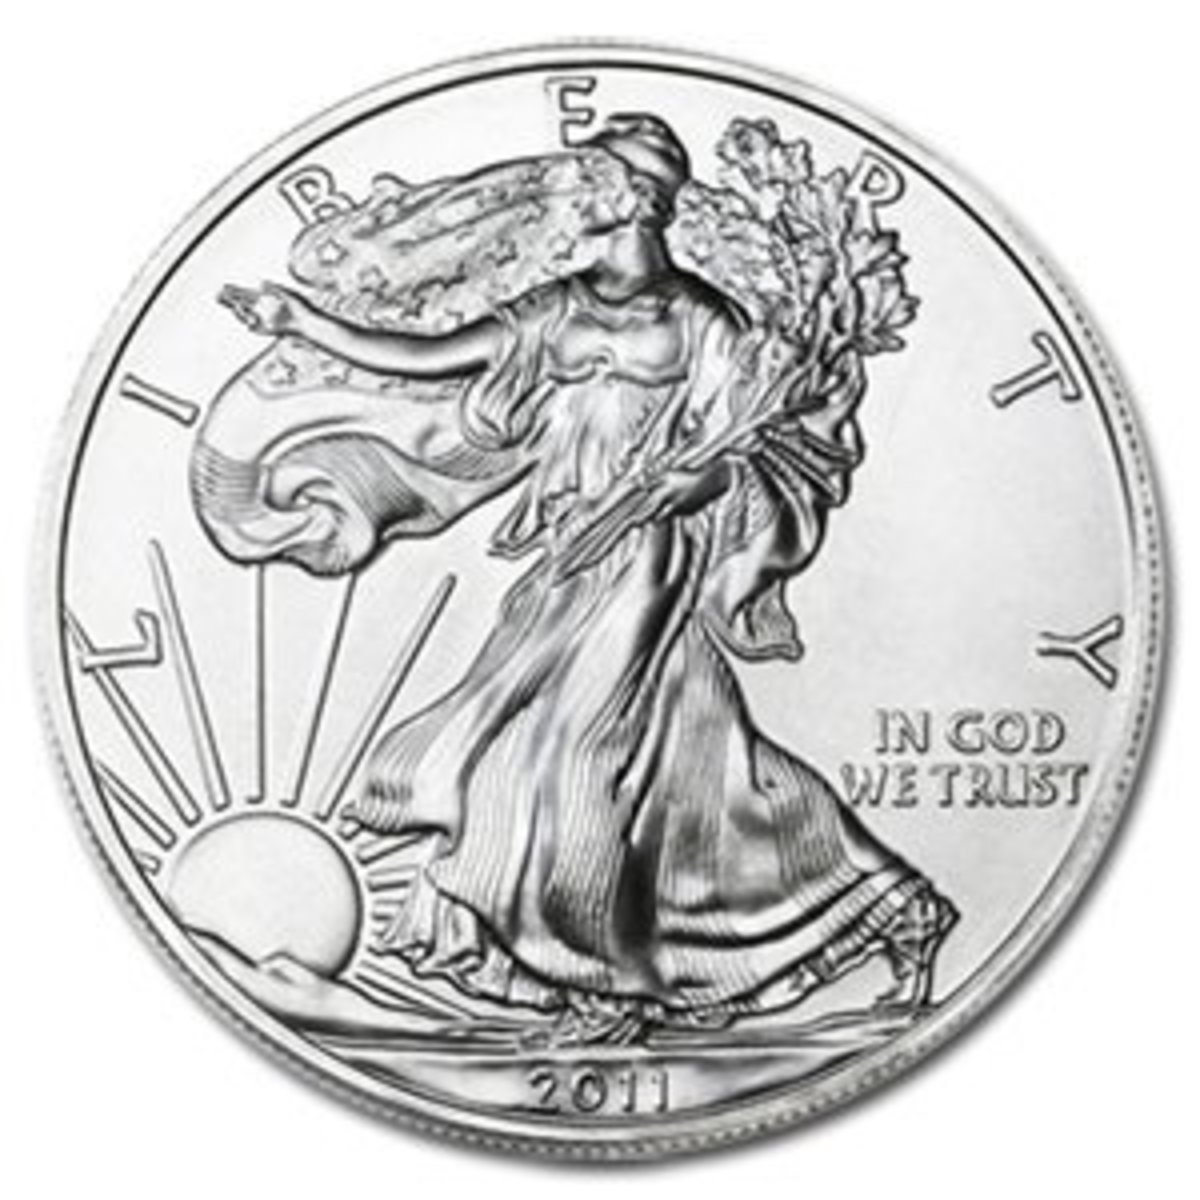 Silver Eagle coin that is 99.9% silver.